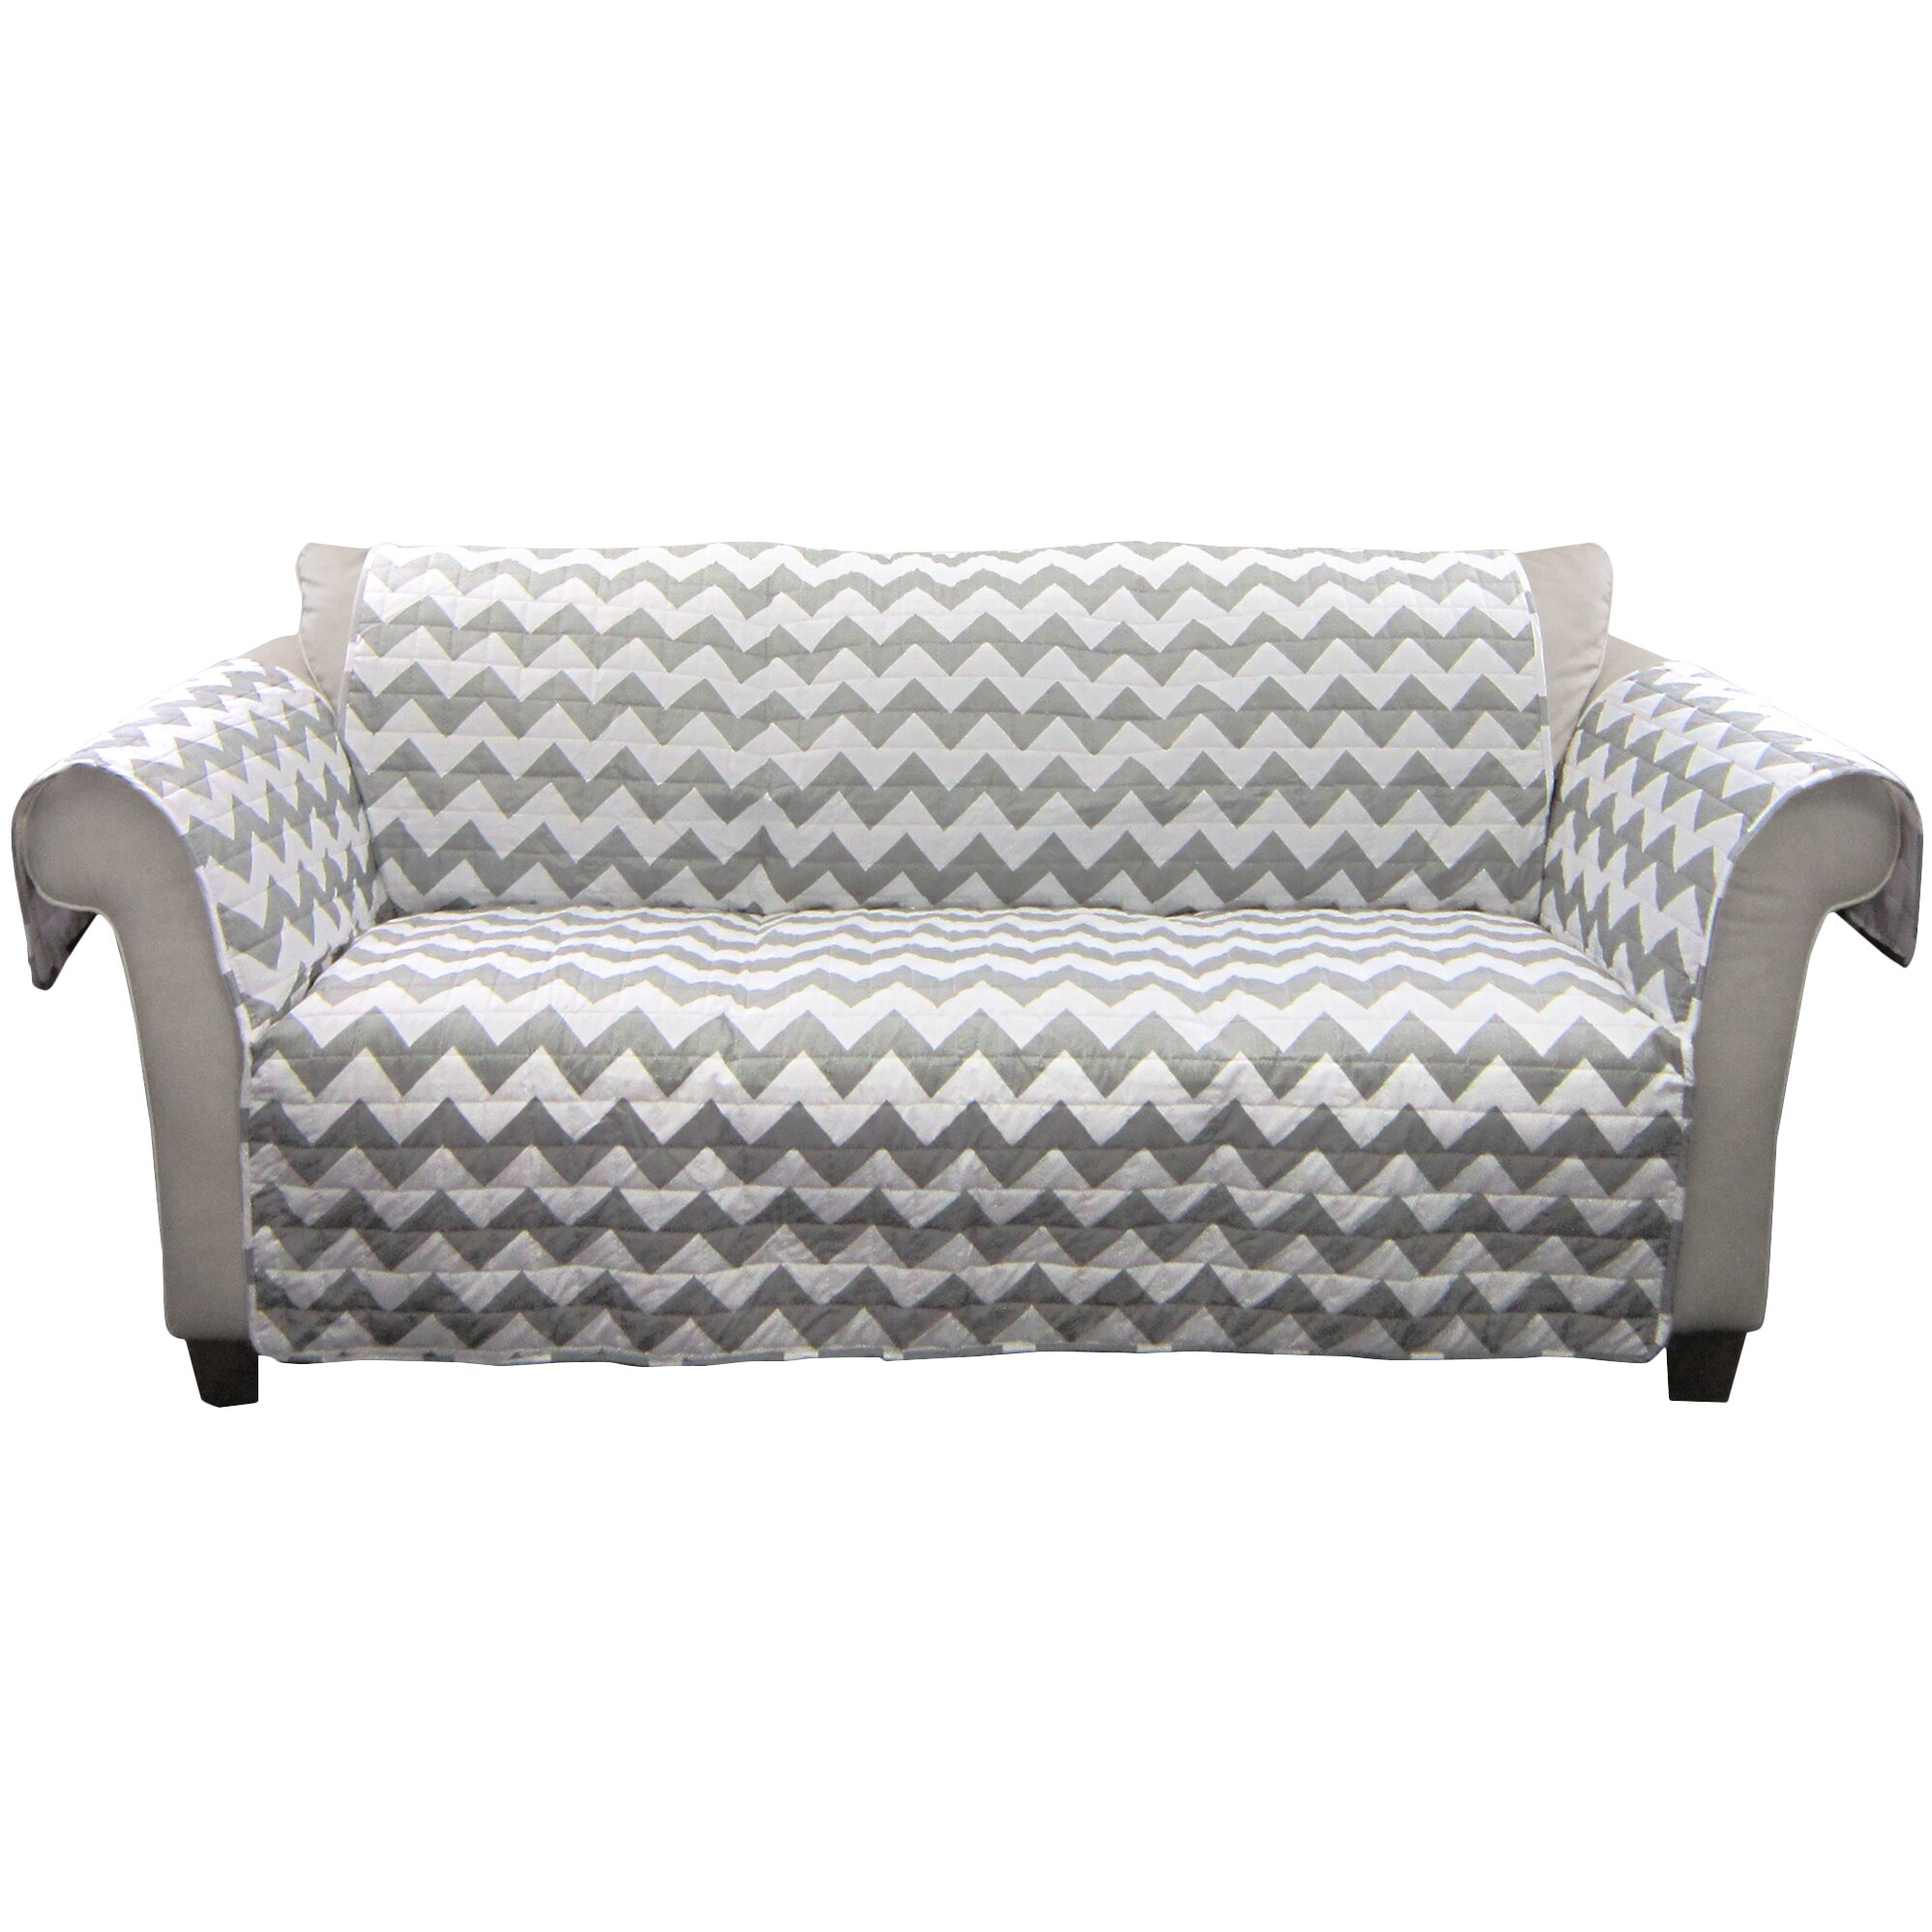 Lush Decor Chevron Sofa Protector Reviews Wayfair